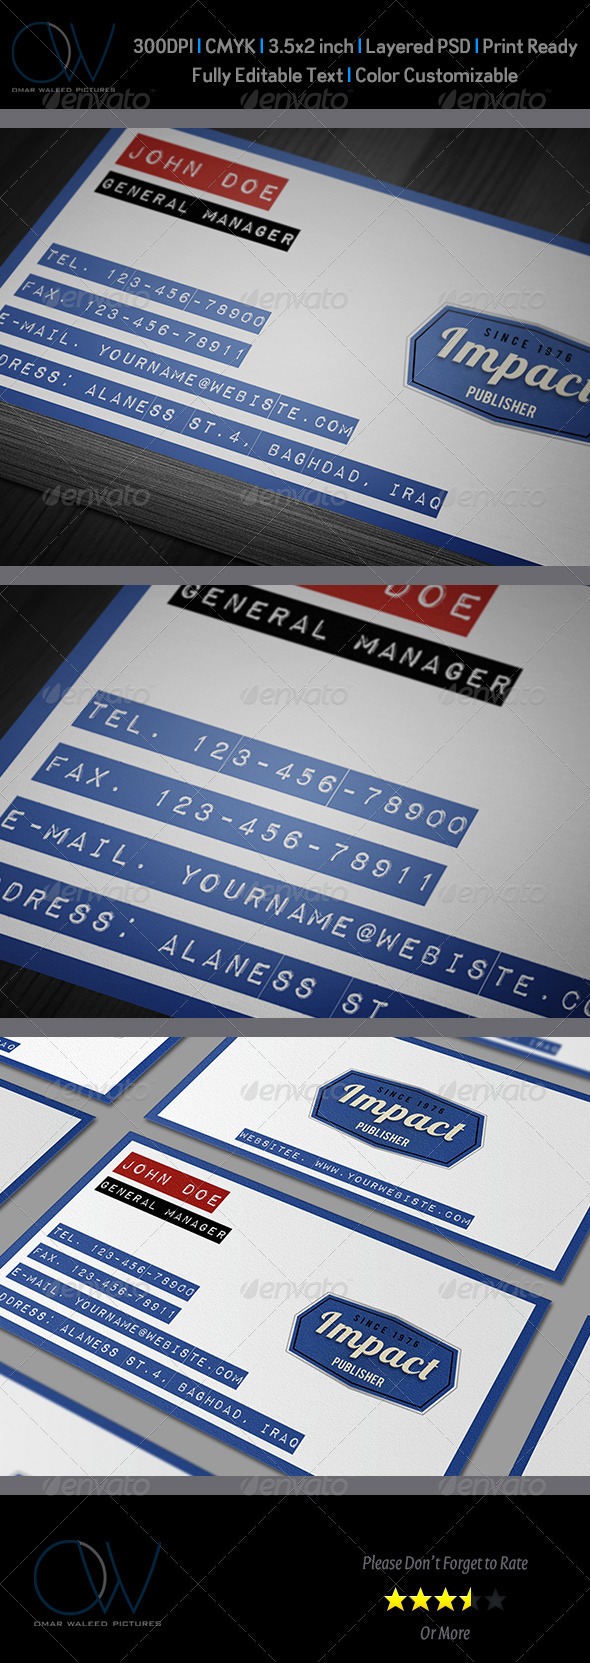 Impact Label Business Card - Retro/Vintage Business Cards